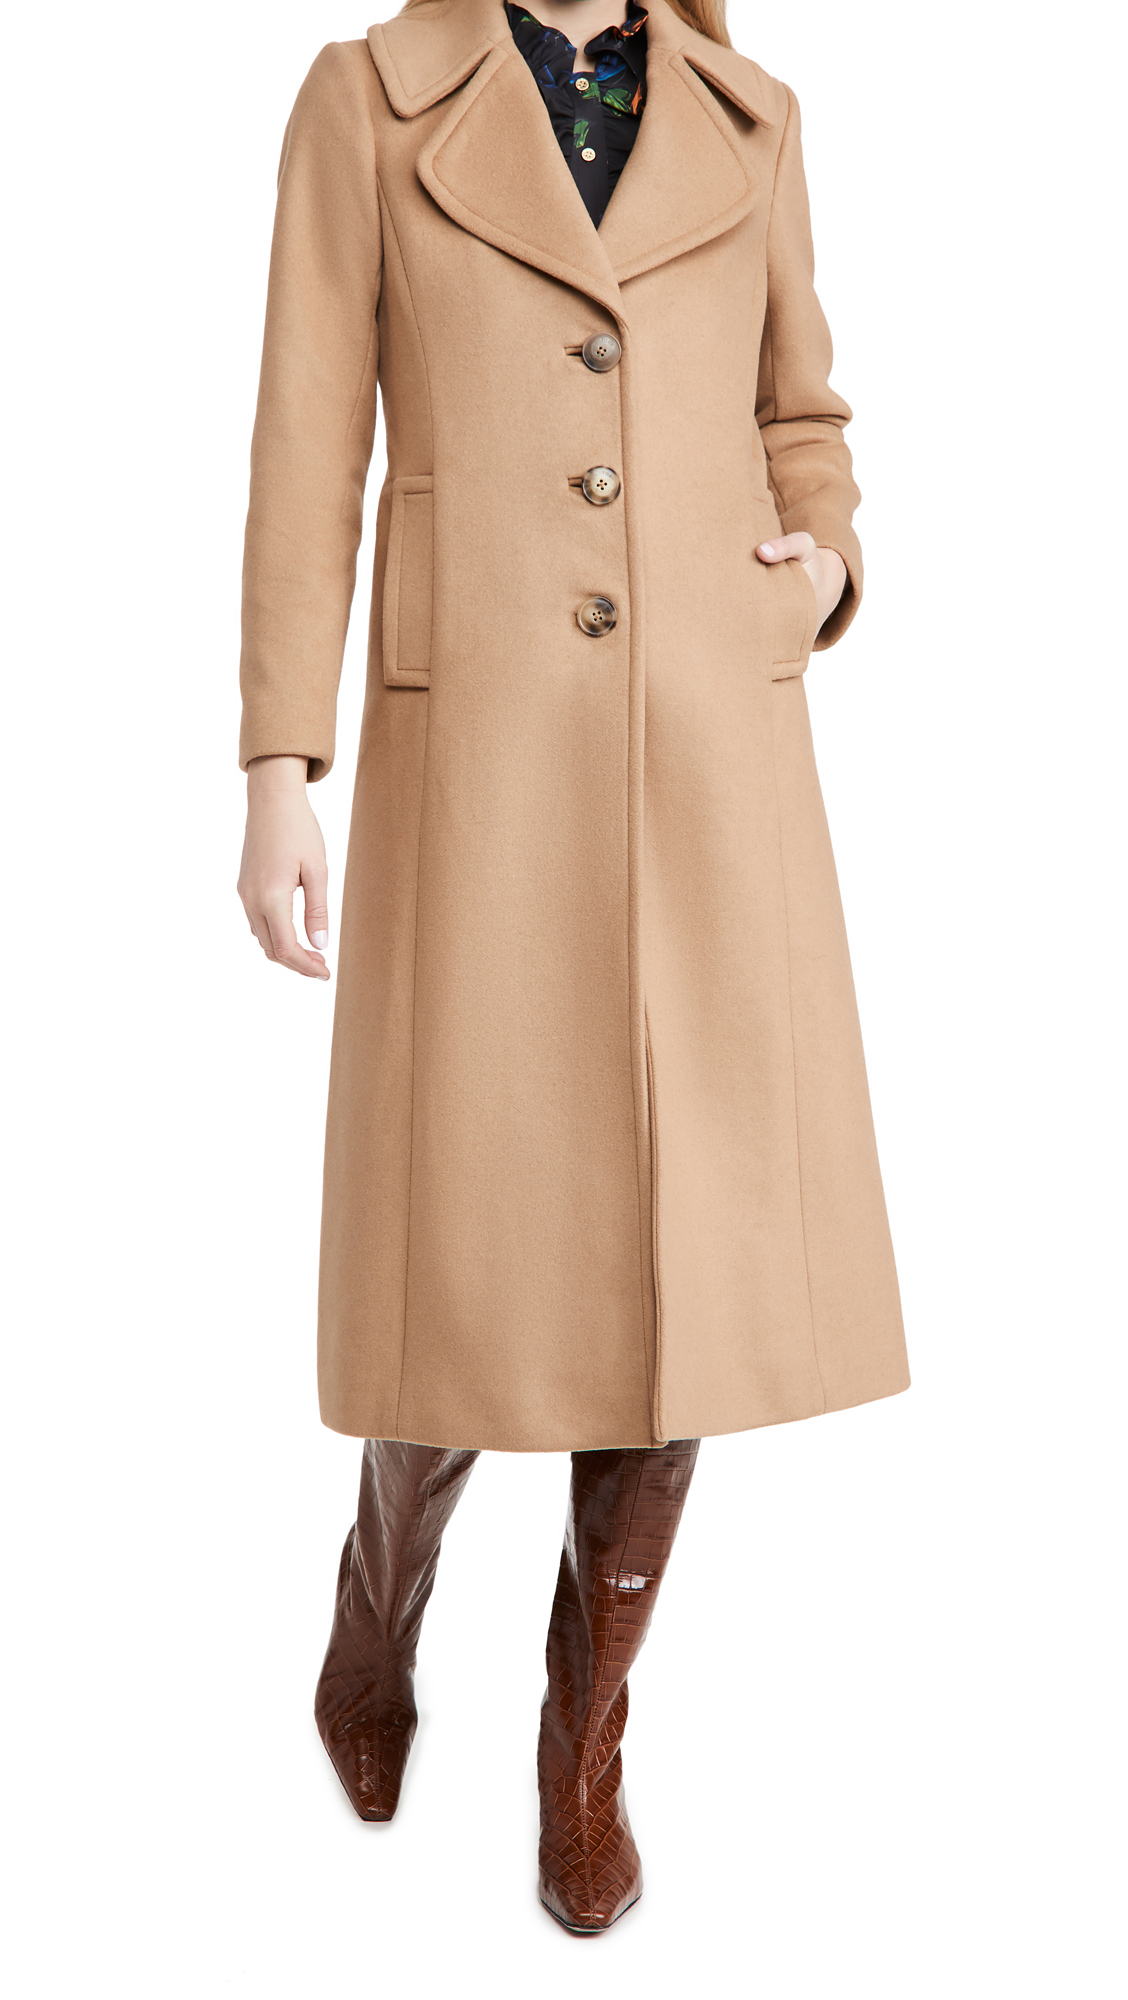 Tory Burch Wool Cashmere Coat